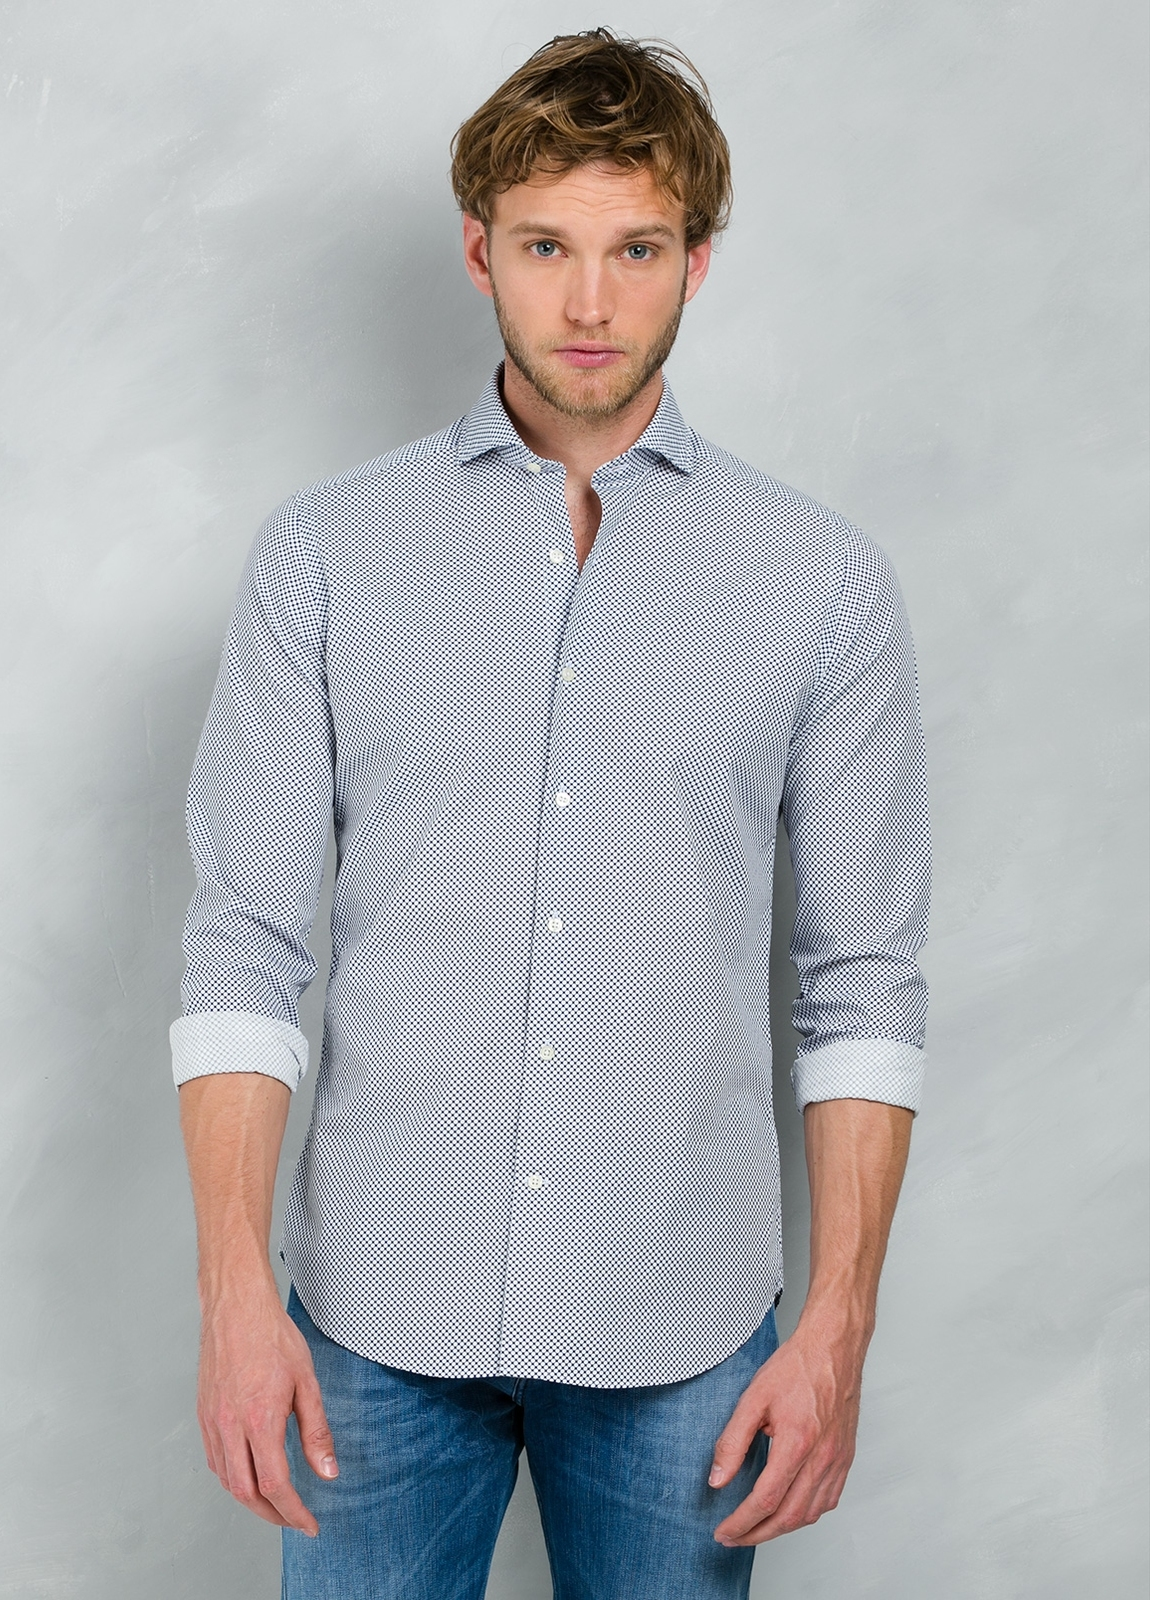 Camisa Casual Wear SLIM FIT Modelo CAPRI estampado lunar color azul, 100% Algodón. - Ítem2